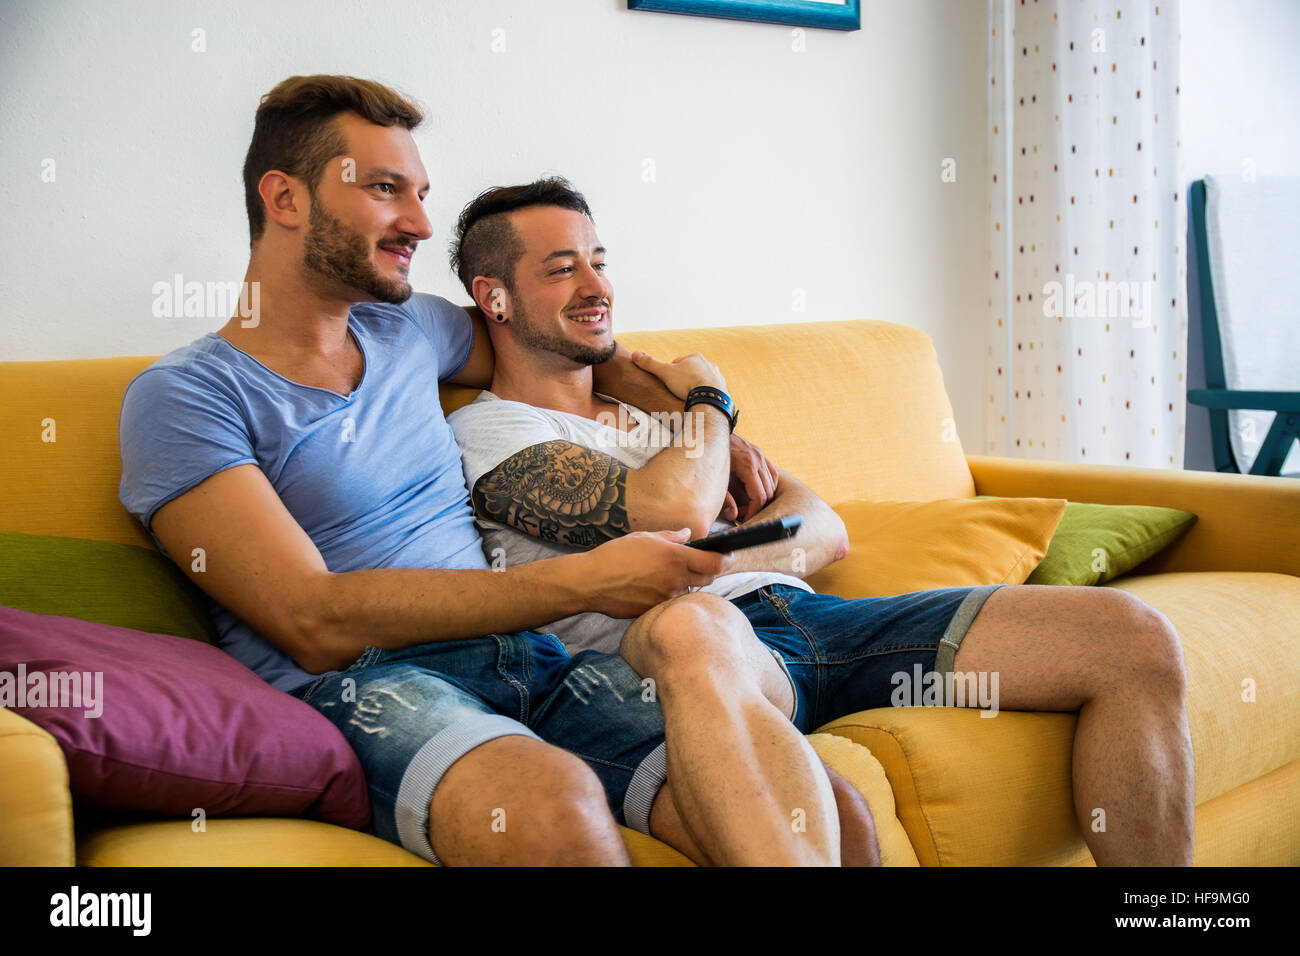 from Trey gay sex on the sofa